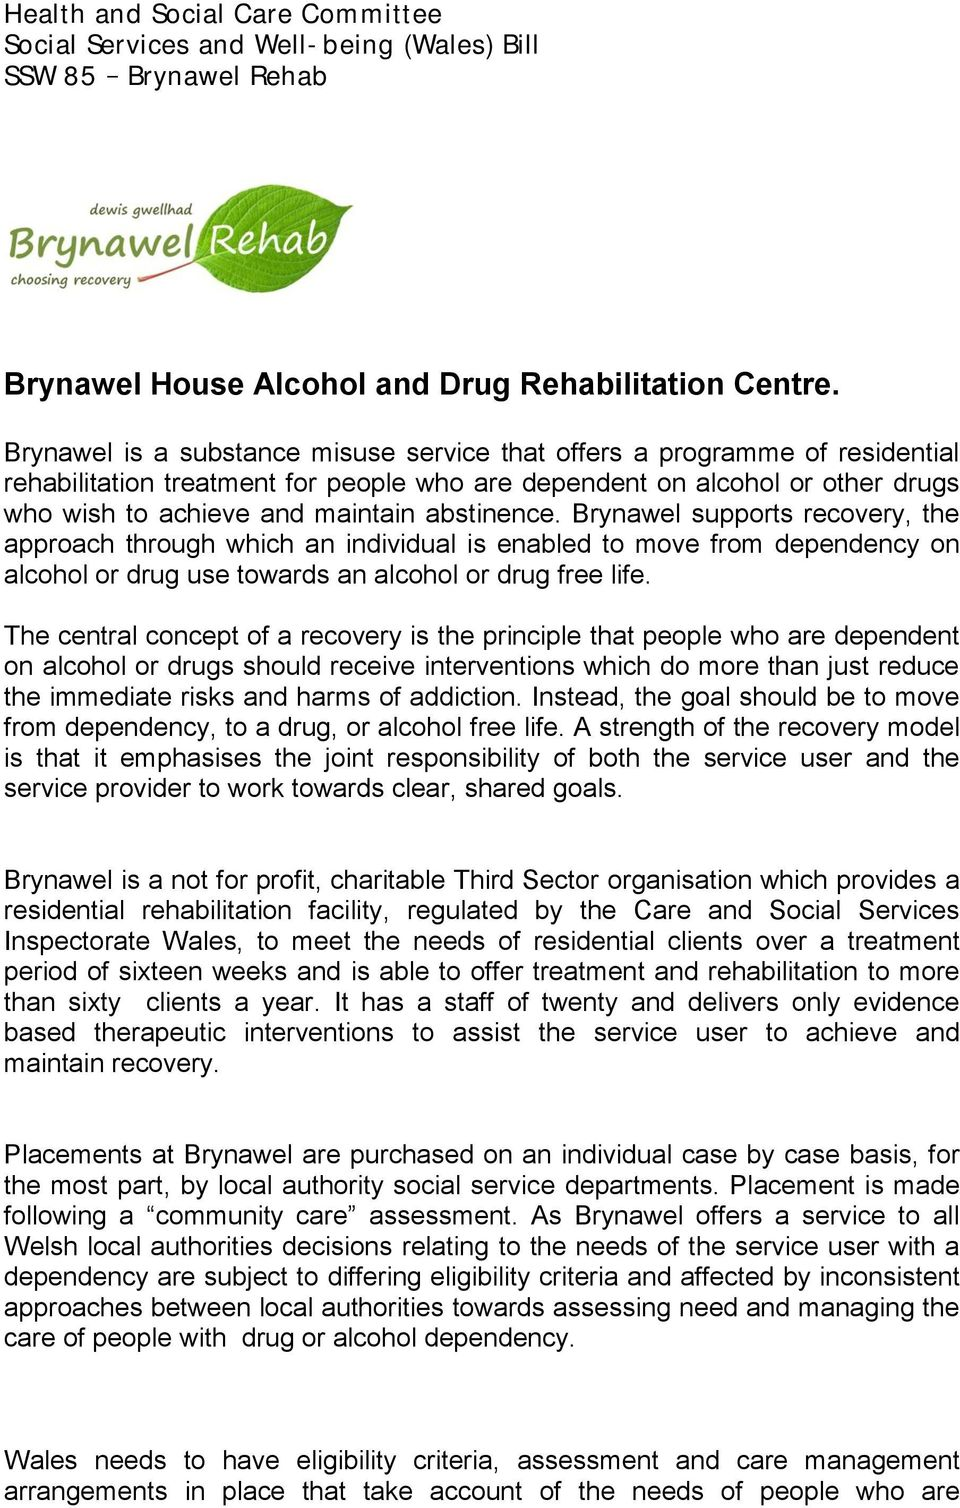 abstinence. Brynawel supports recovery, the approach through which an individual is enabled to move from dependency on alcohol or drug use towards an alcohol or drug free life.